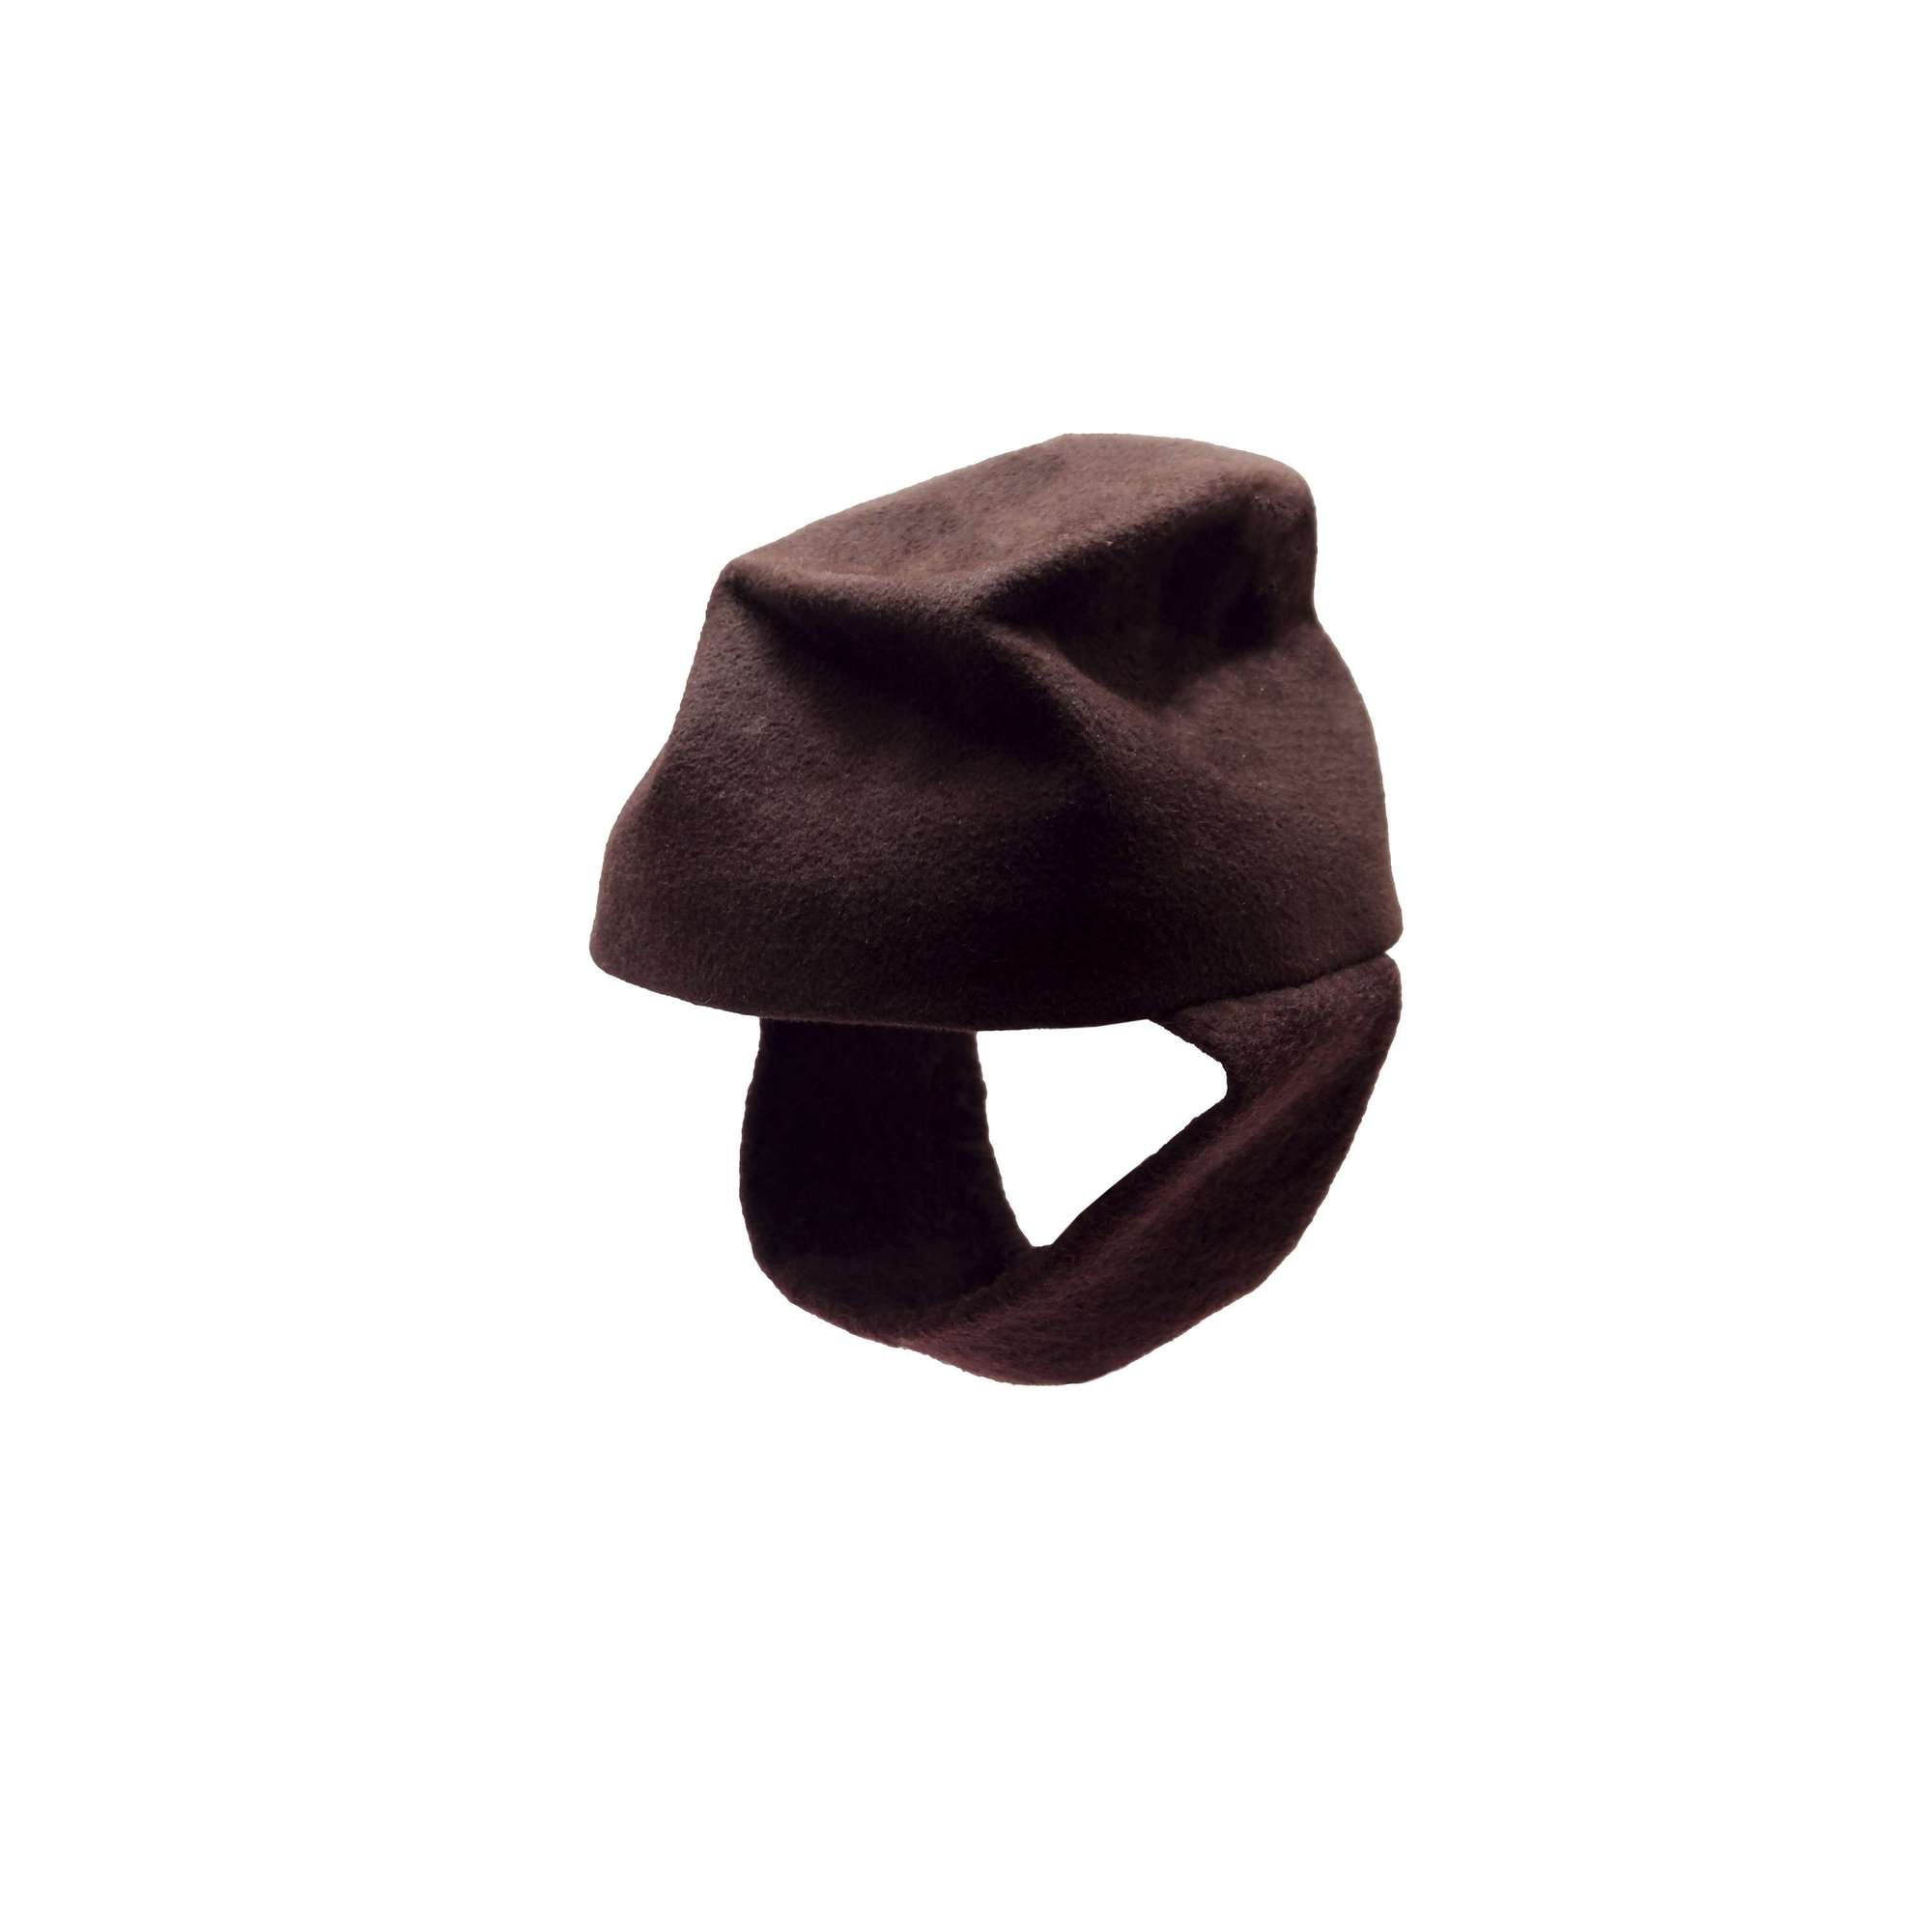 YOUR HAT NUMBER 3341